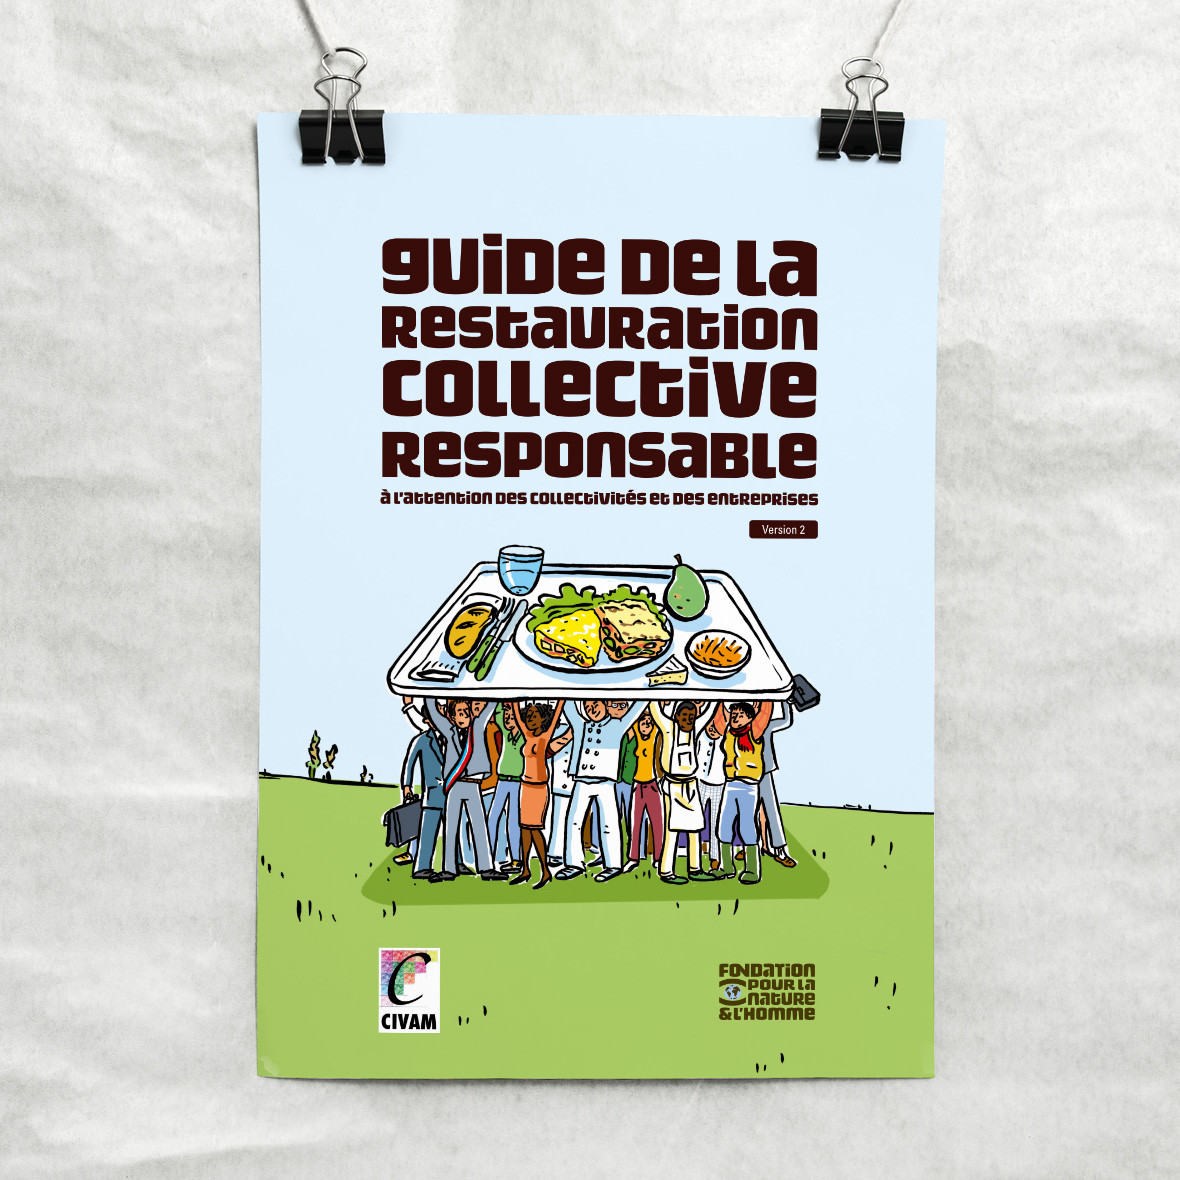 Guide de la restauration collective